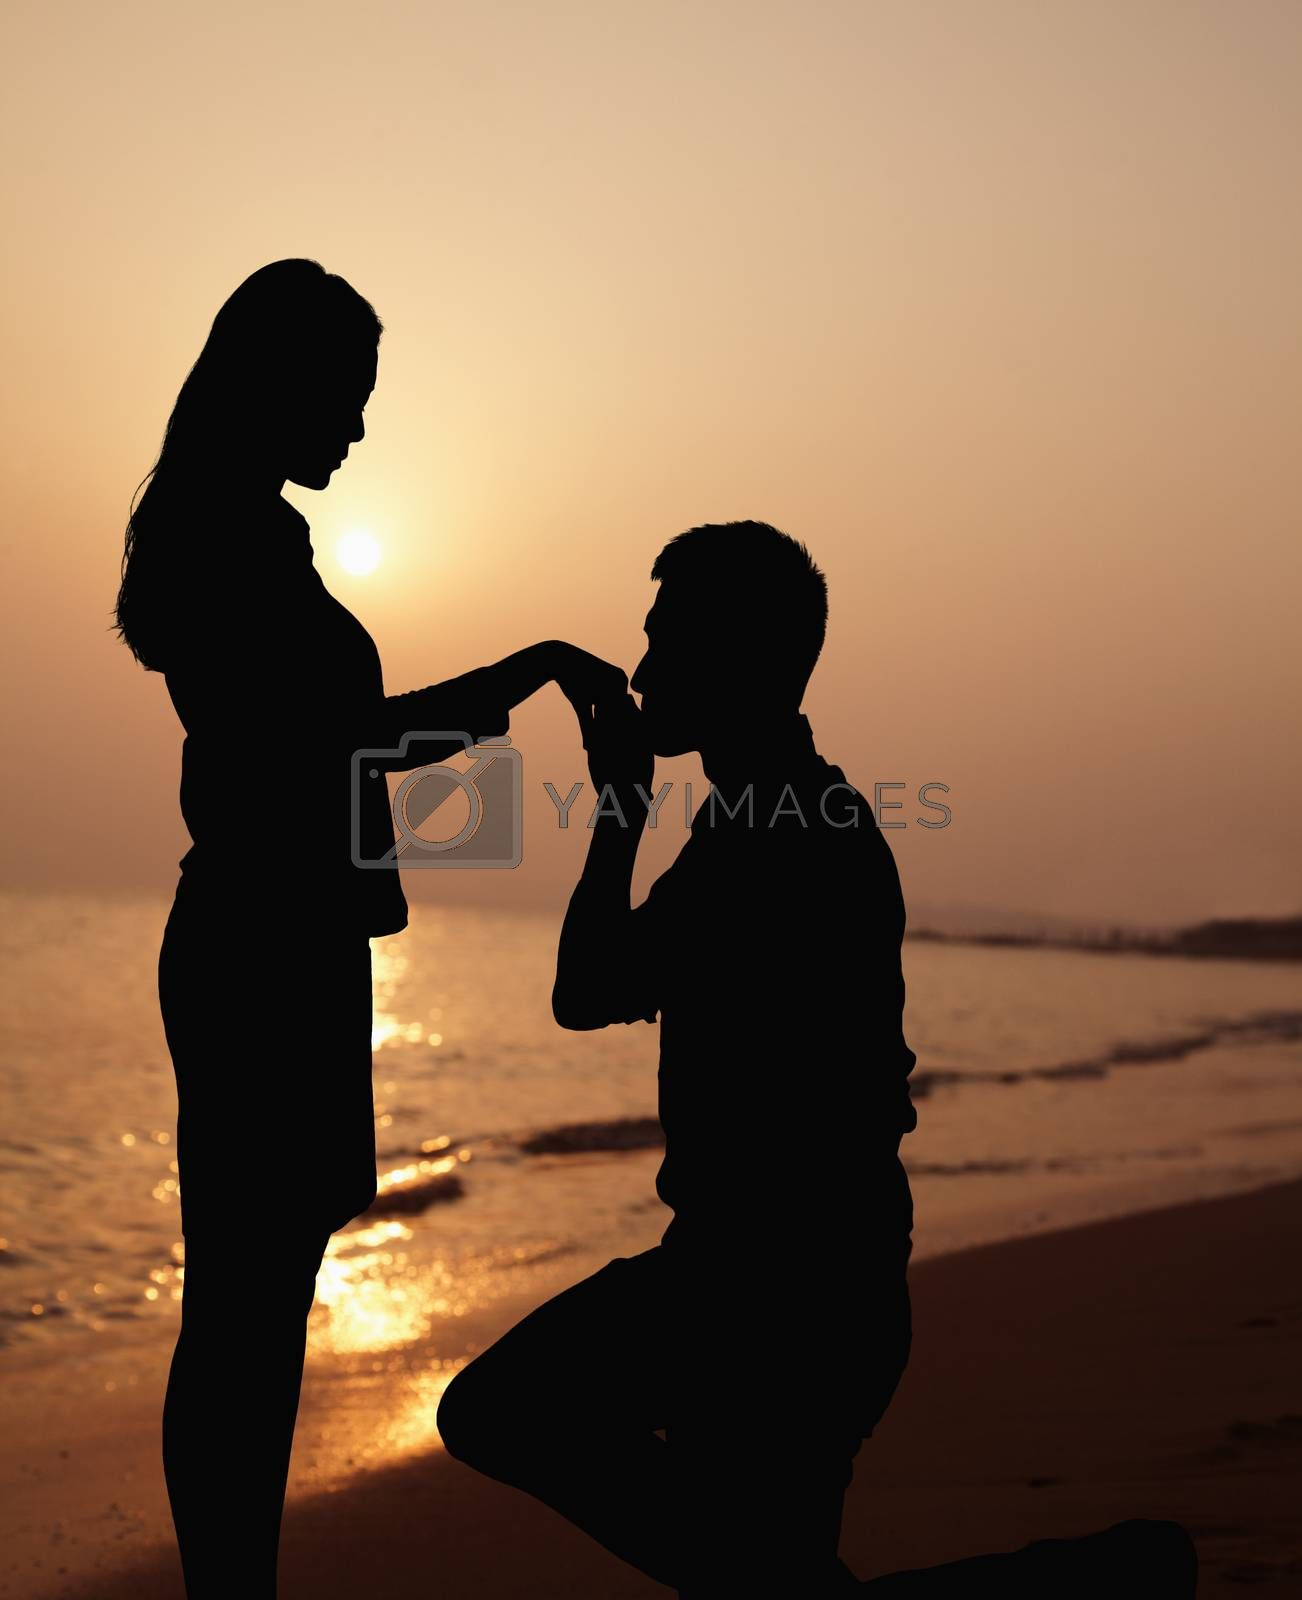 Silhouette of boyfriend kneeling and kissing his girlfriends hand on the beach at sunset by XiXinXing